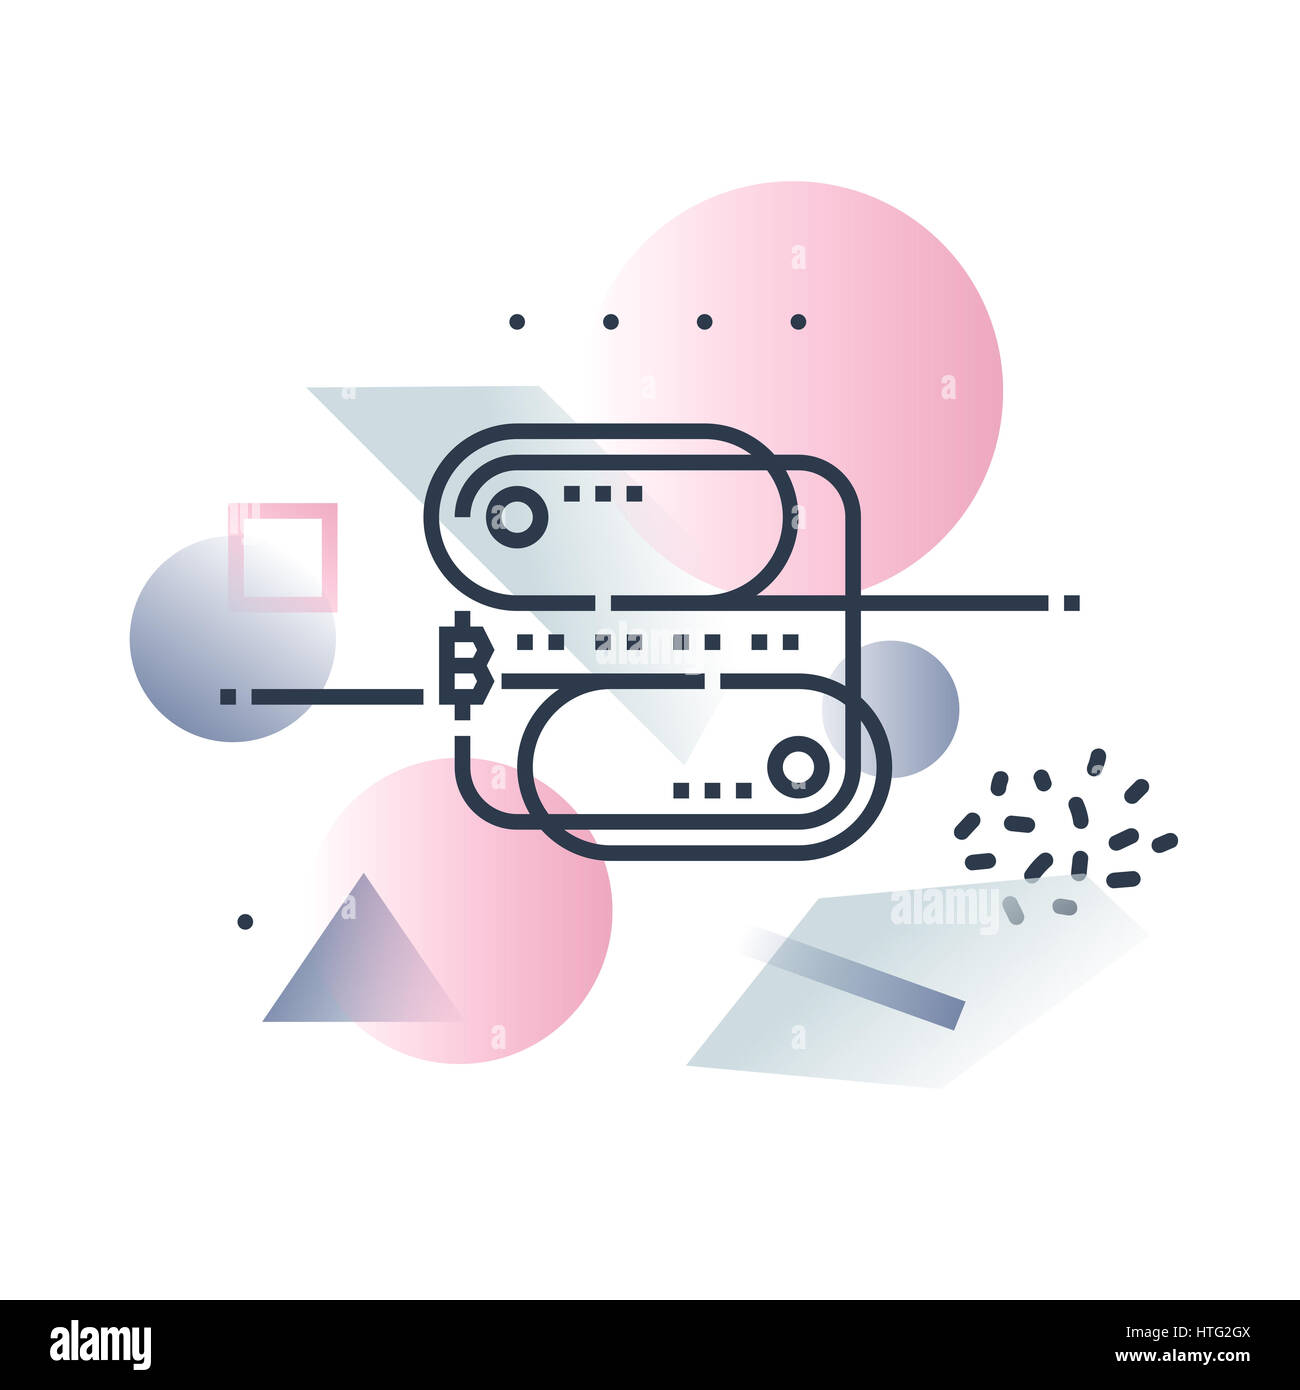 Blockchain technology,distributed databasestructure. Abstract illustration concept. - Stock Image